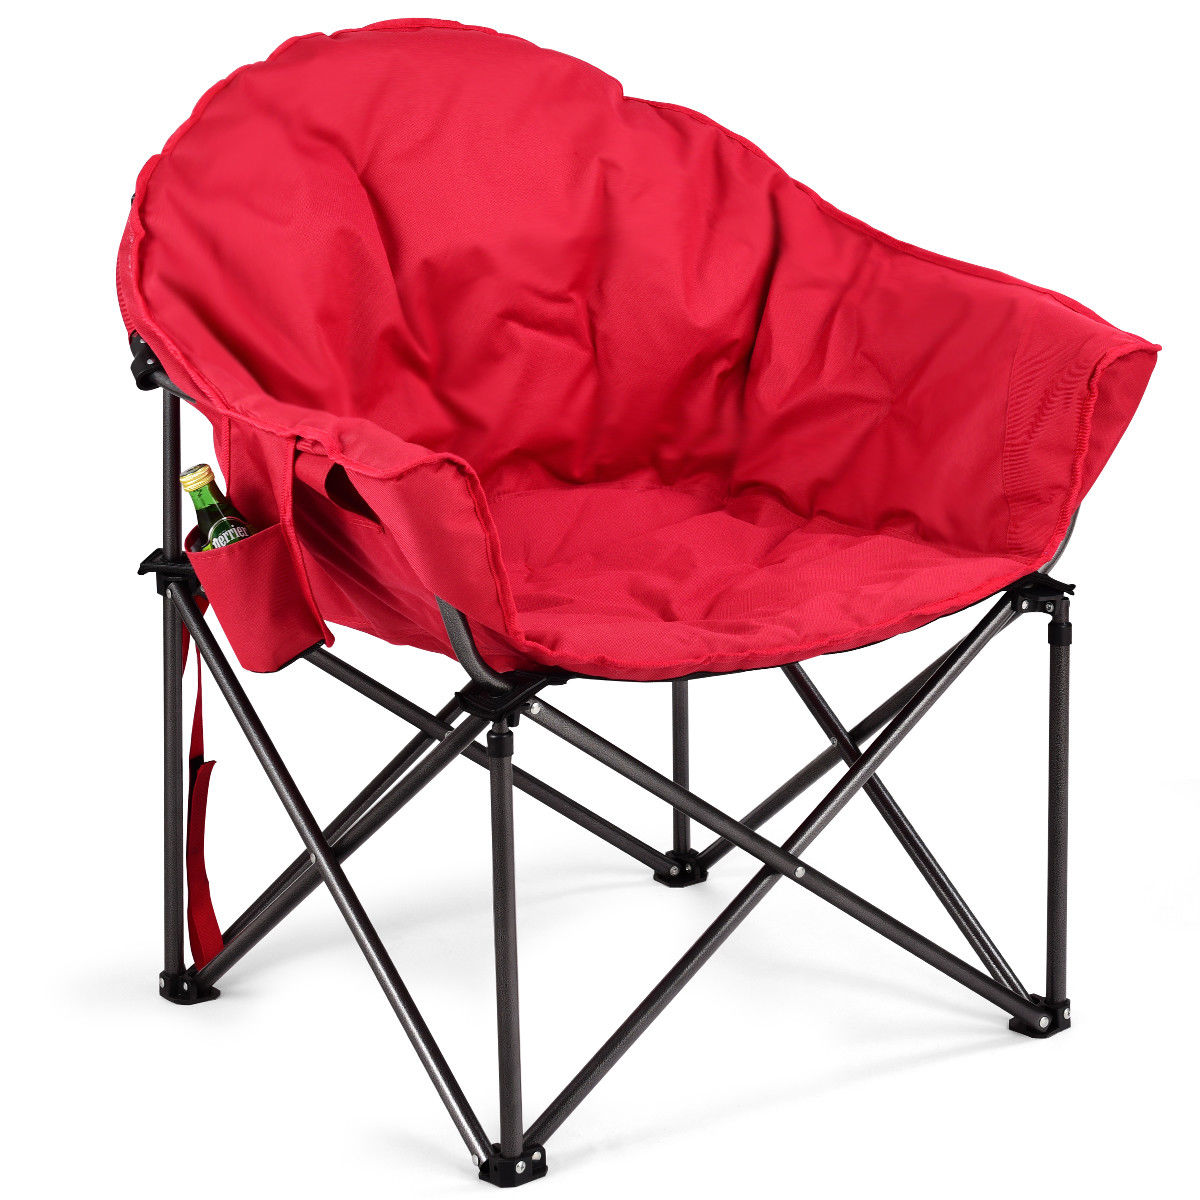 Costway Oversized Saucer Moon Folding Camping Chair Padded Seat w/Cup Holder&Carry Bag